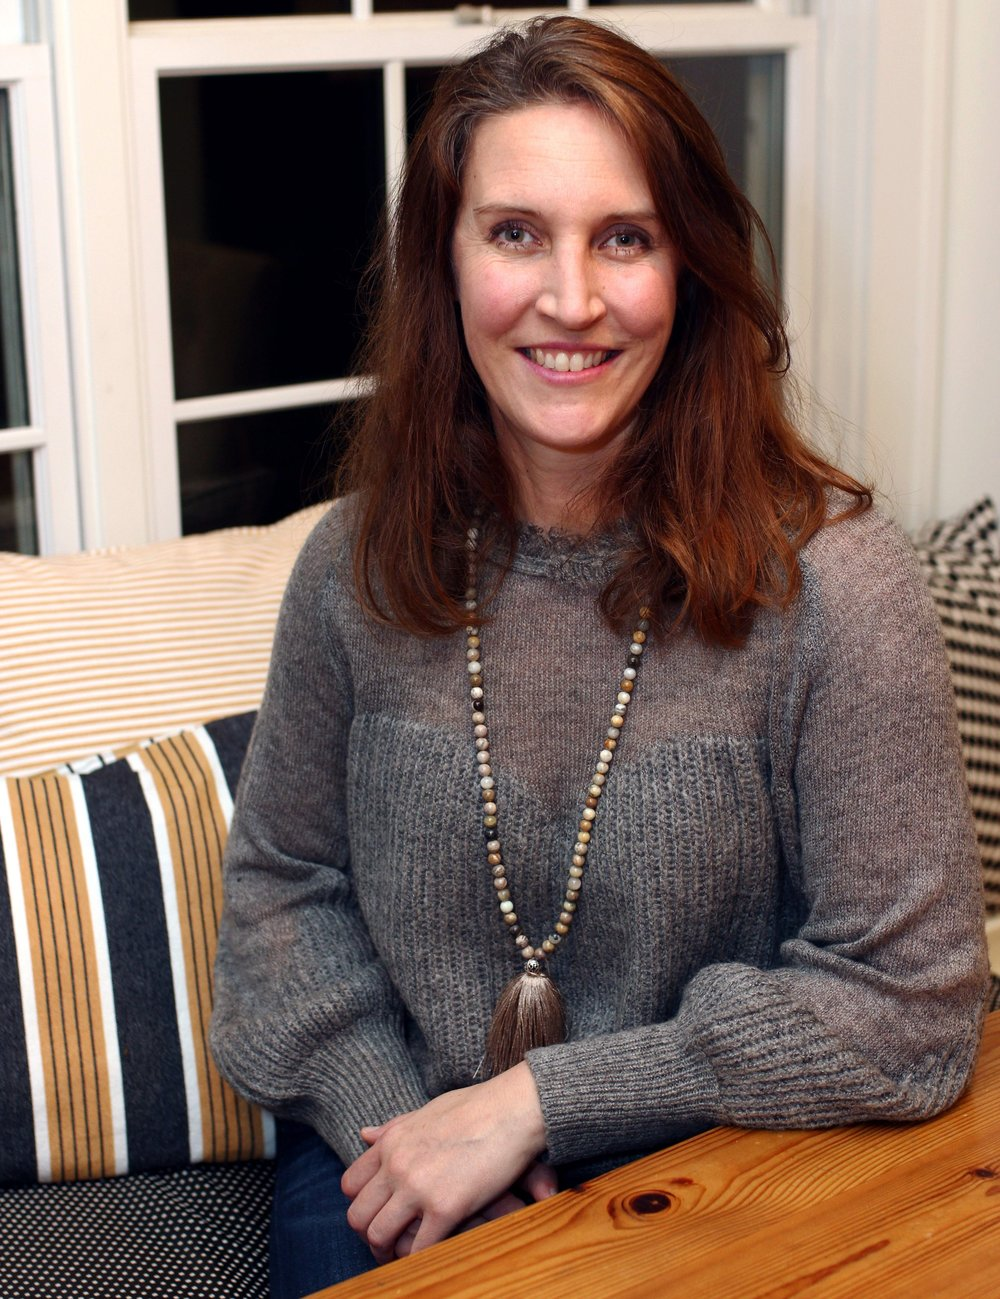 Kelly Patrick - Kelly's love of yoga and community is what drives her. She enjoys working with adults and seniors, helping them to find their drive. Combining her love of yoga and her experience as an occupational therapist, Kelly provides a holistic approach to her clients.